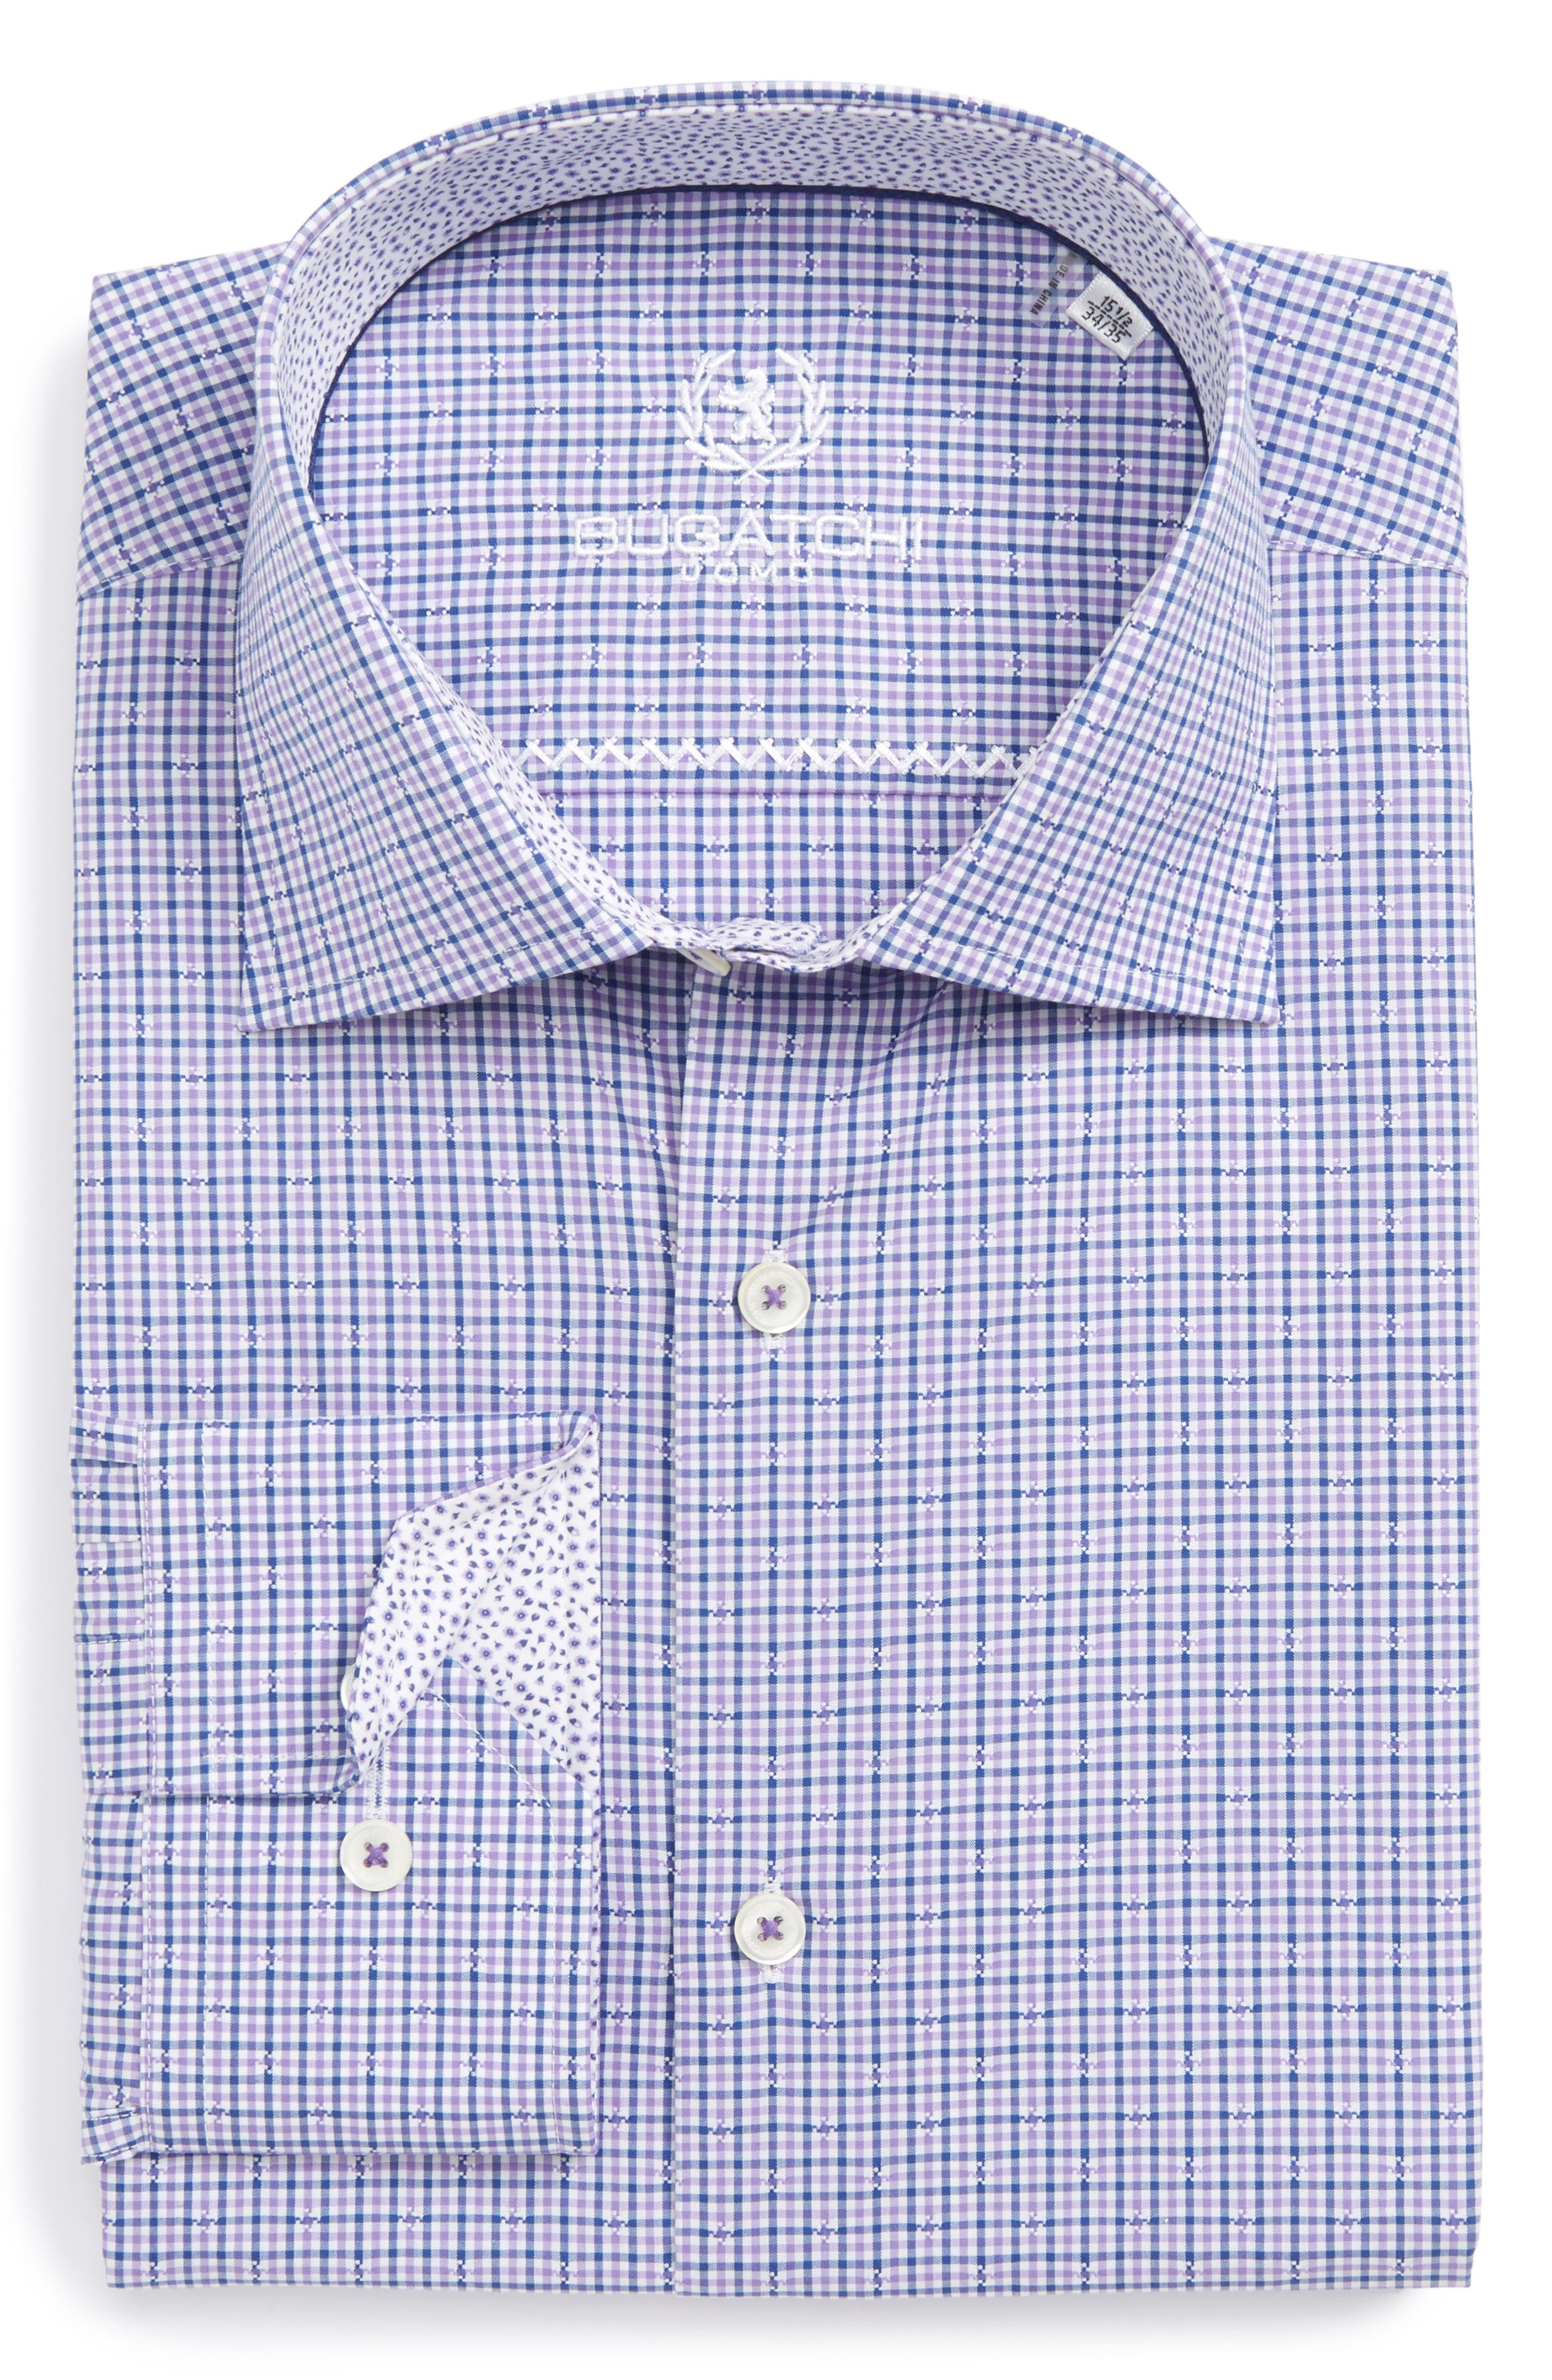 Trim Fit Check Dress Shirt,                         Main,                         color, Orchid